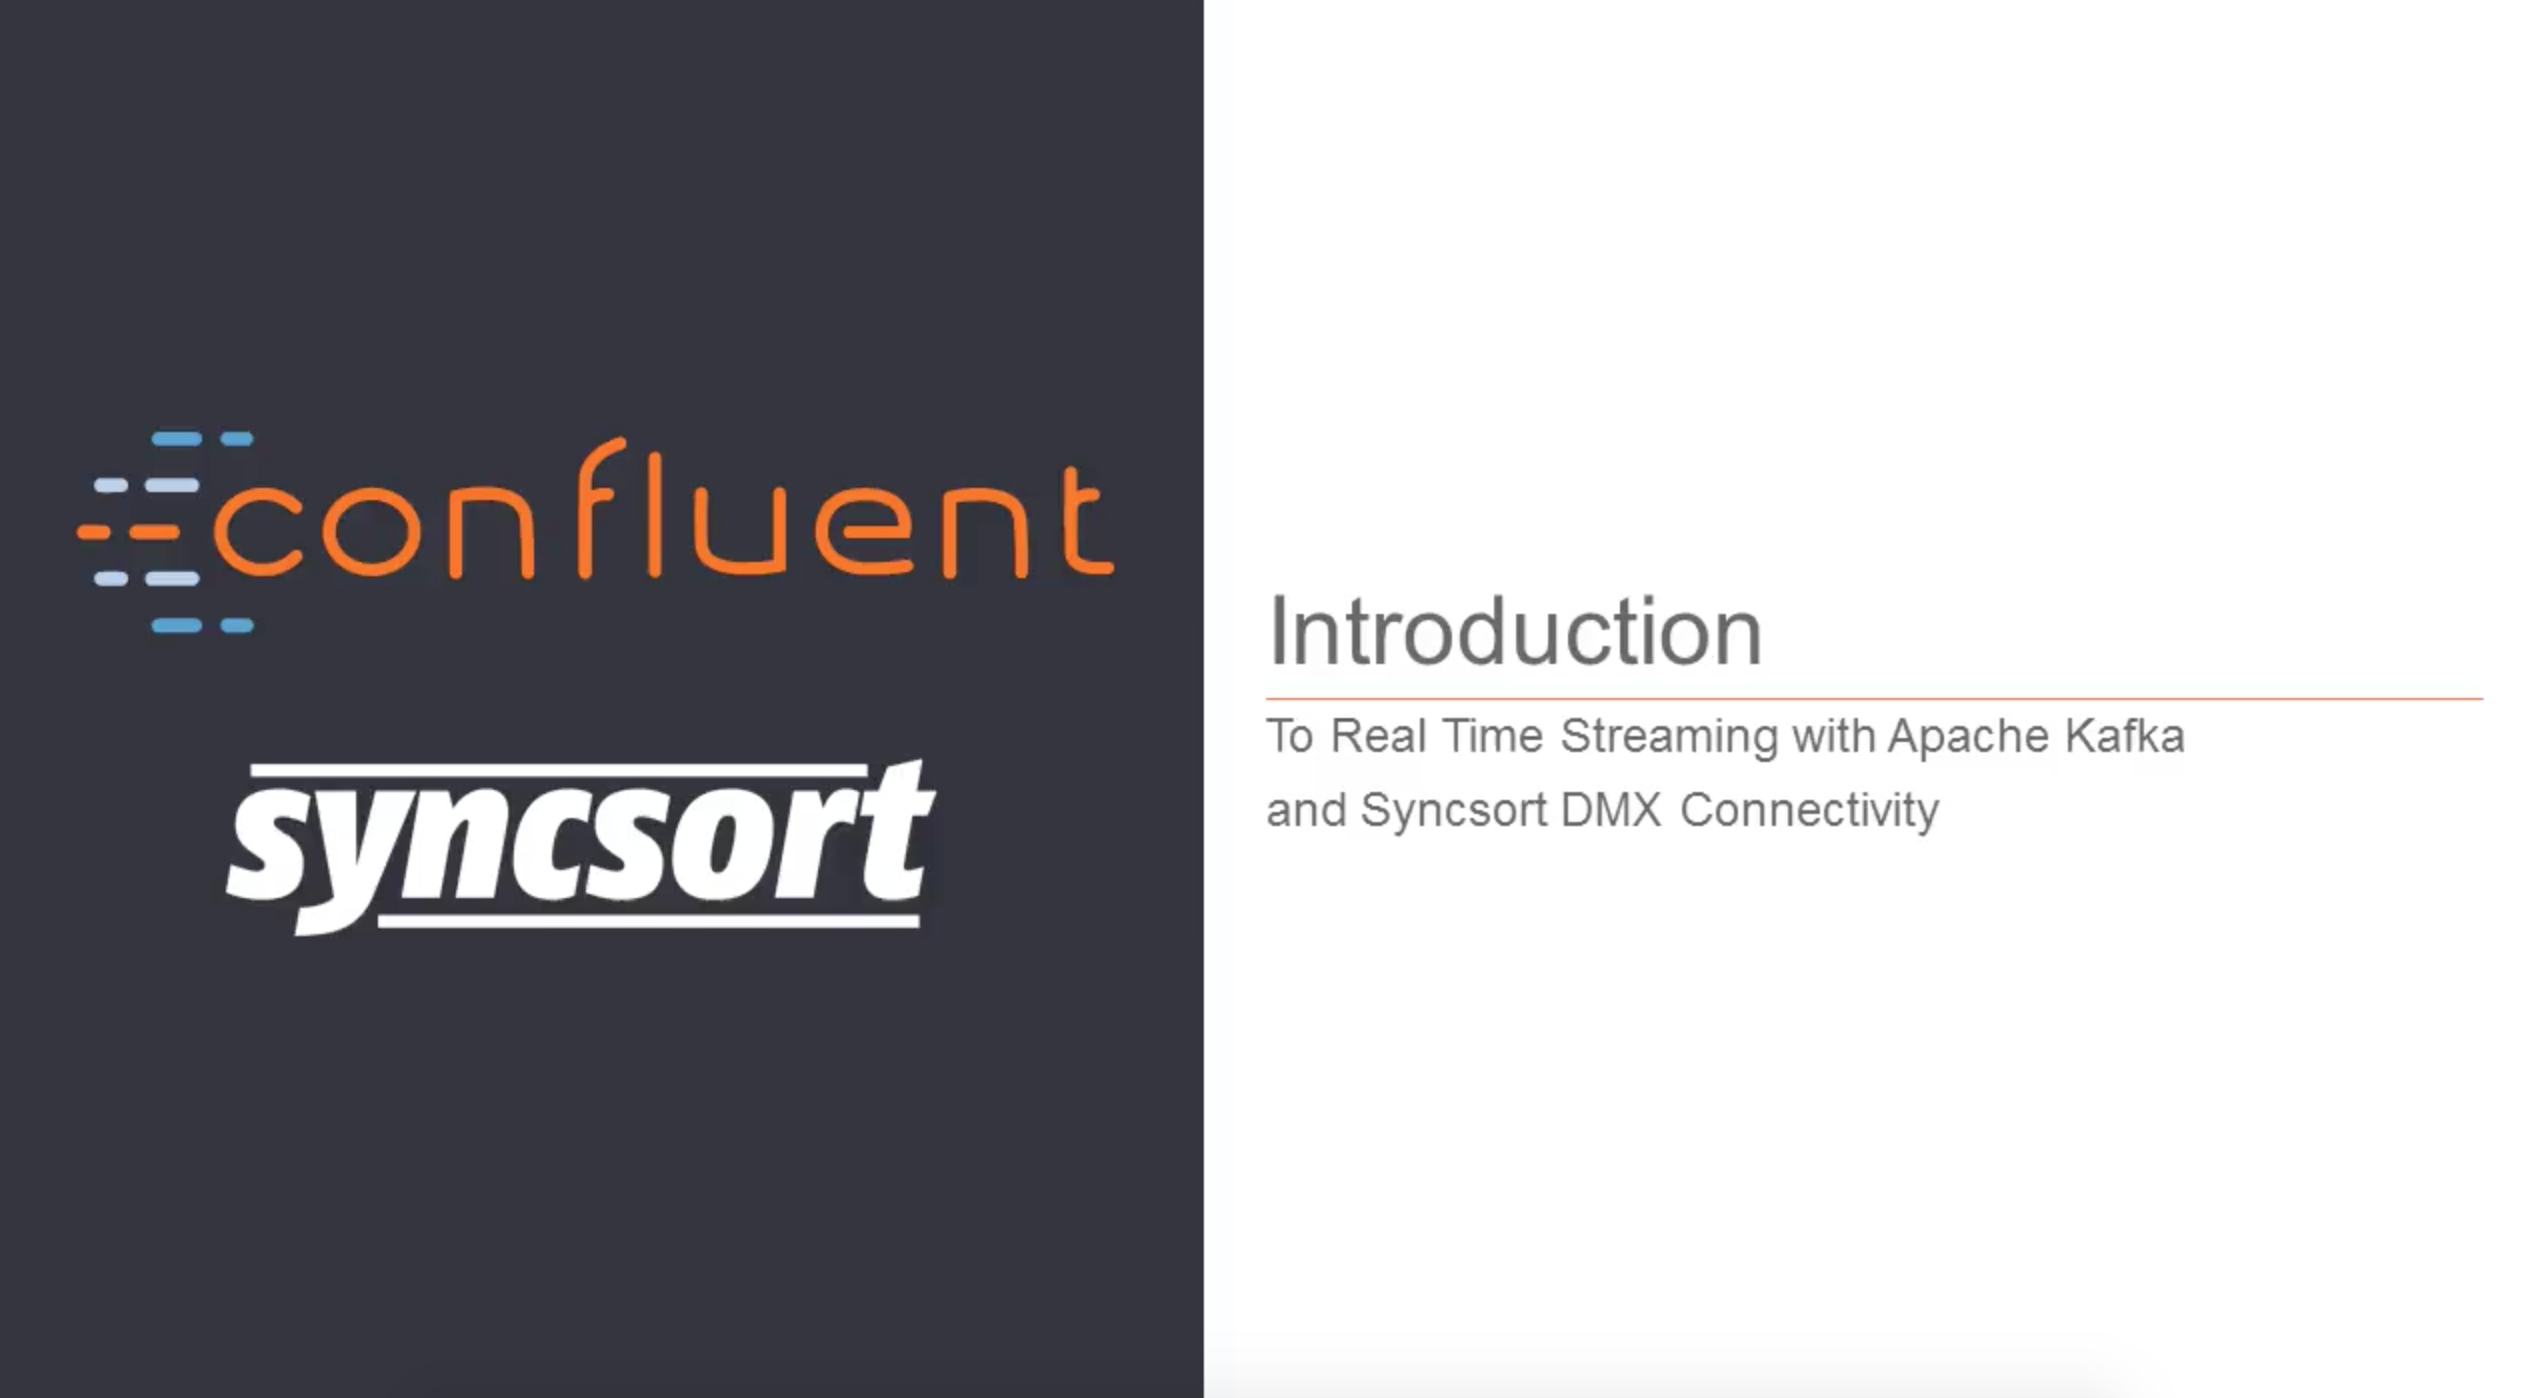 Introduction to Real-time Streaming with Apache Kafka and Syncsort DMX Connectivity